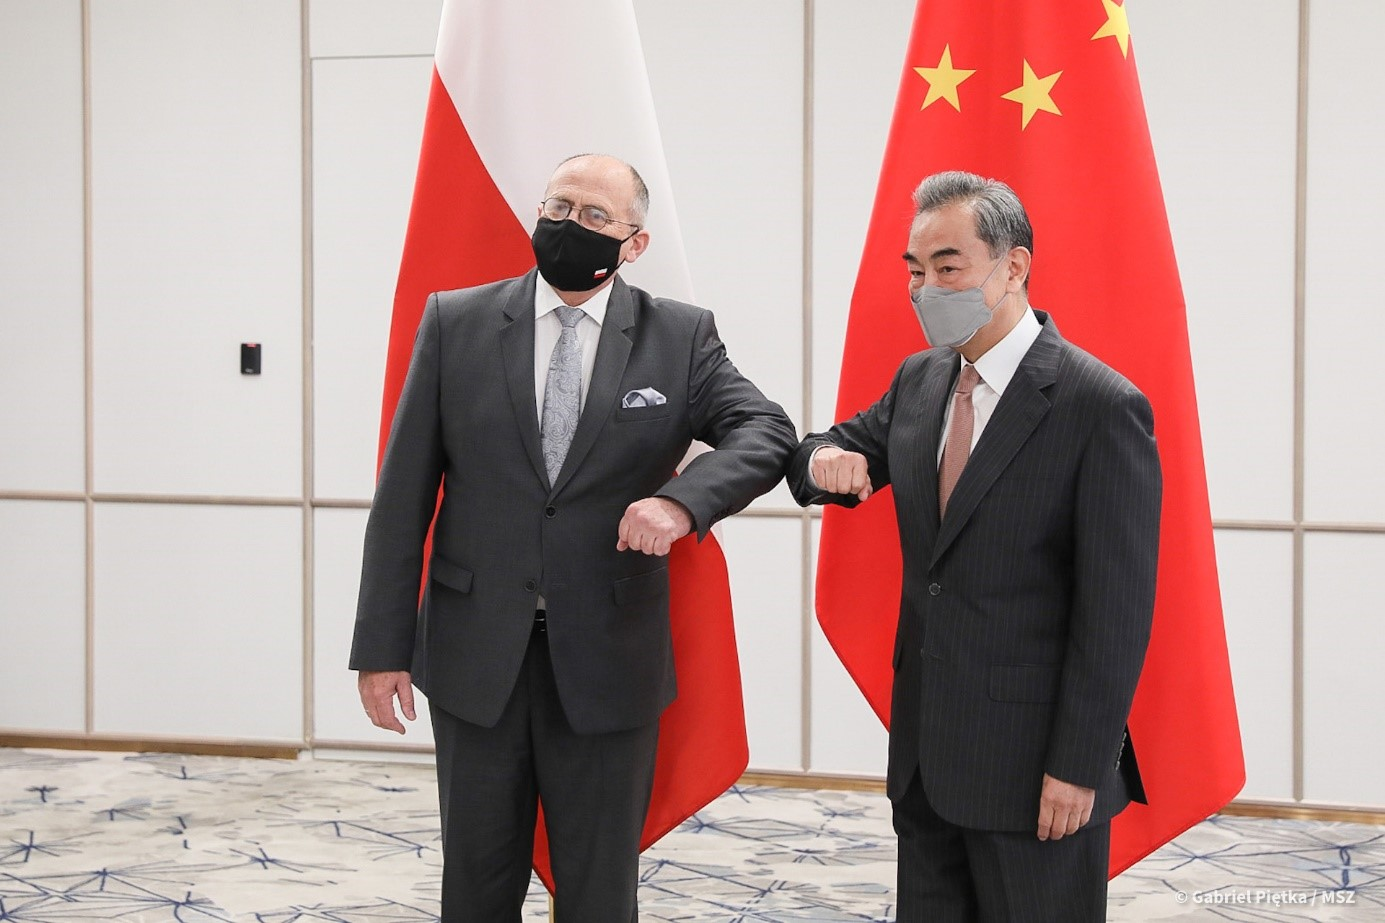 Foreign Ministers of Poland and Hungary in China